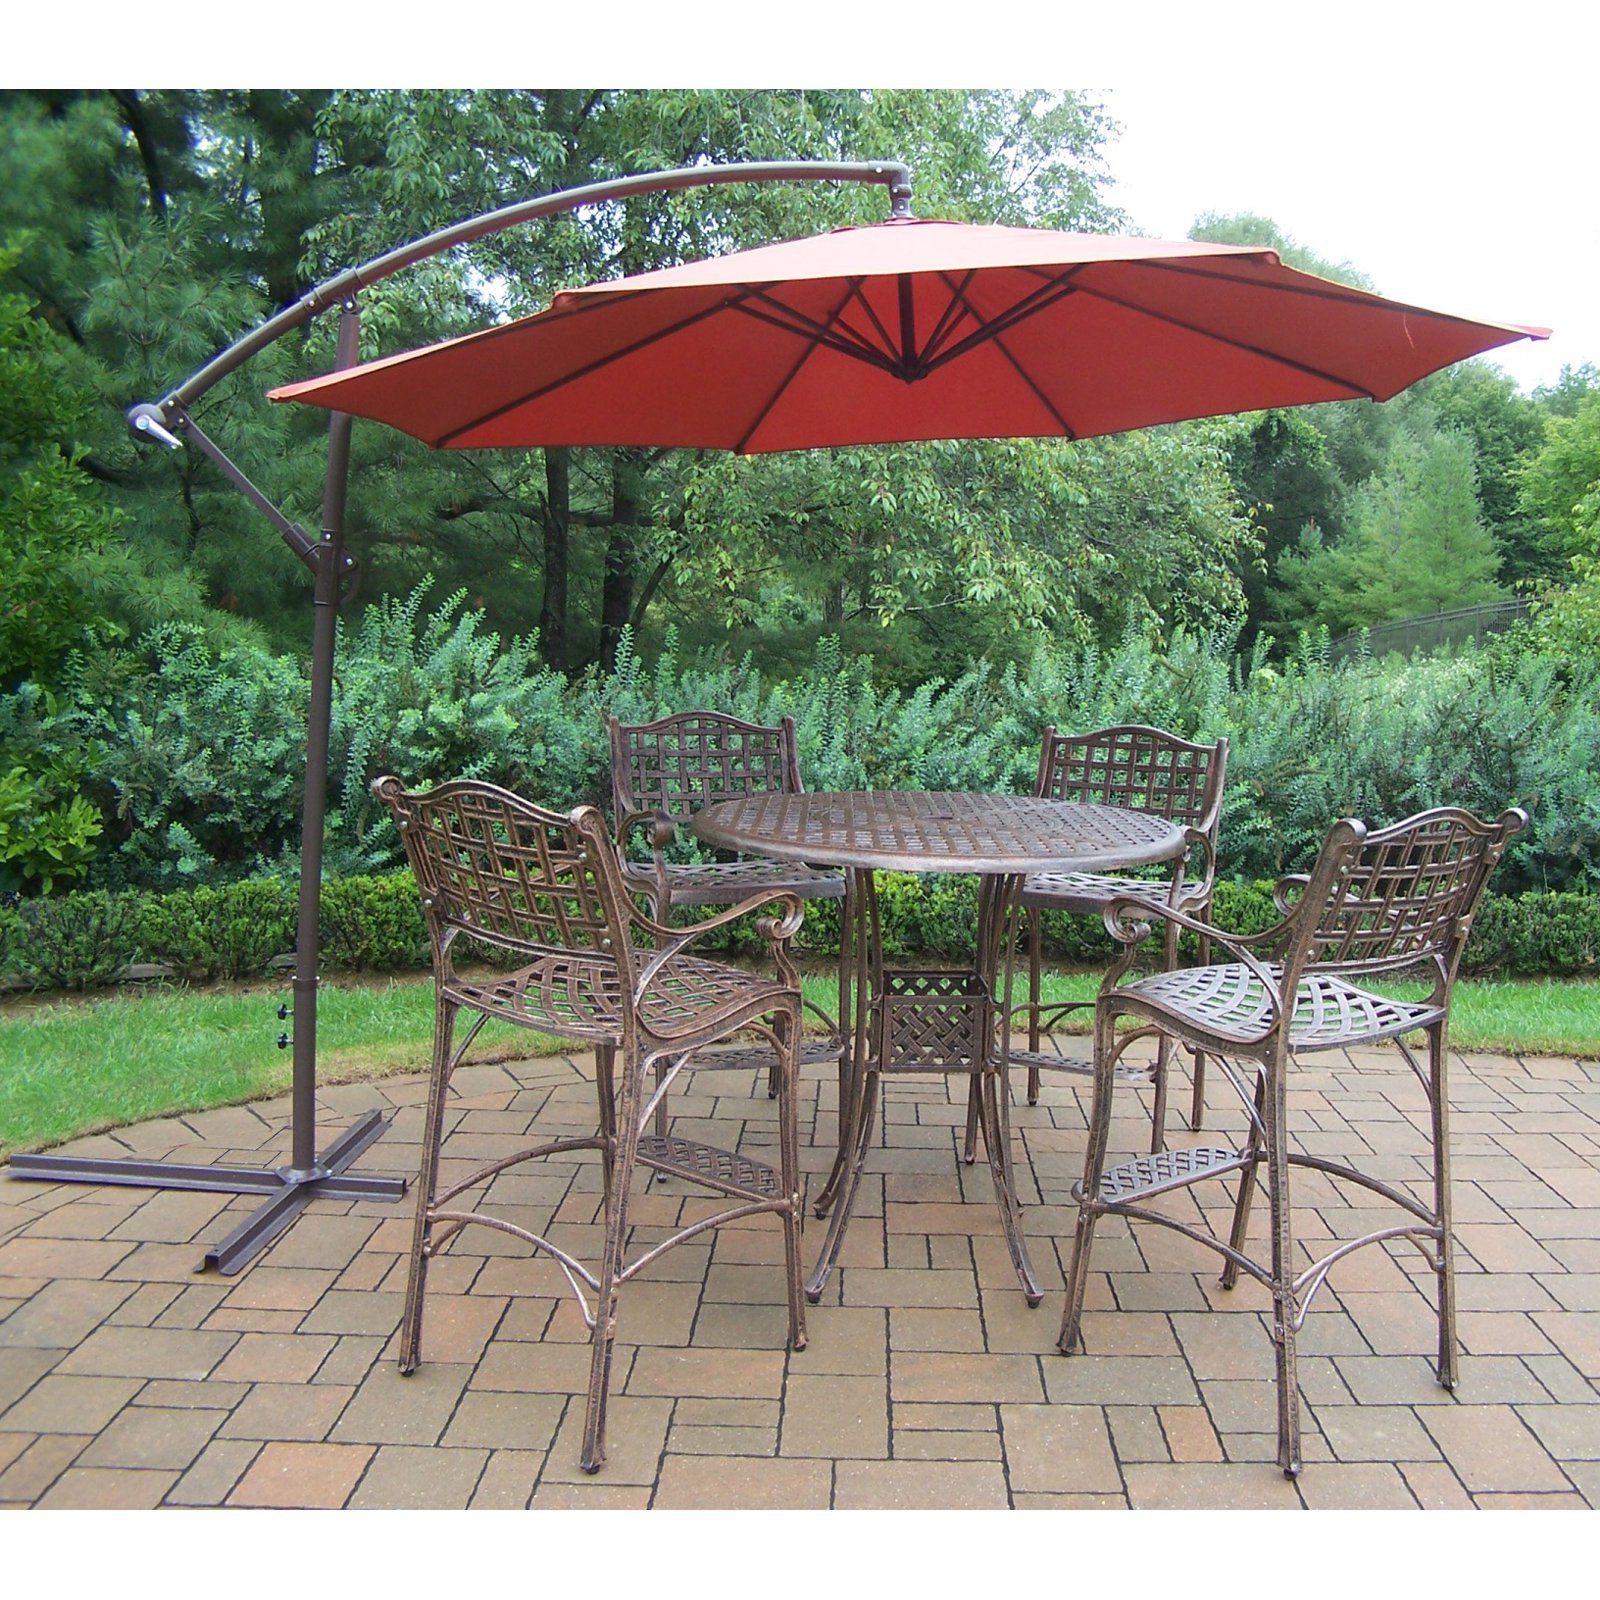 Ordinaire Oakland Living Elite Cast Aluminum 5 Piece Patio Bar Set With Cantilever  Umbrella